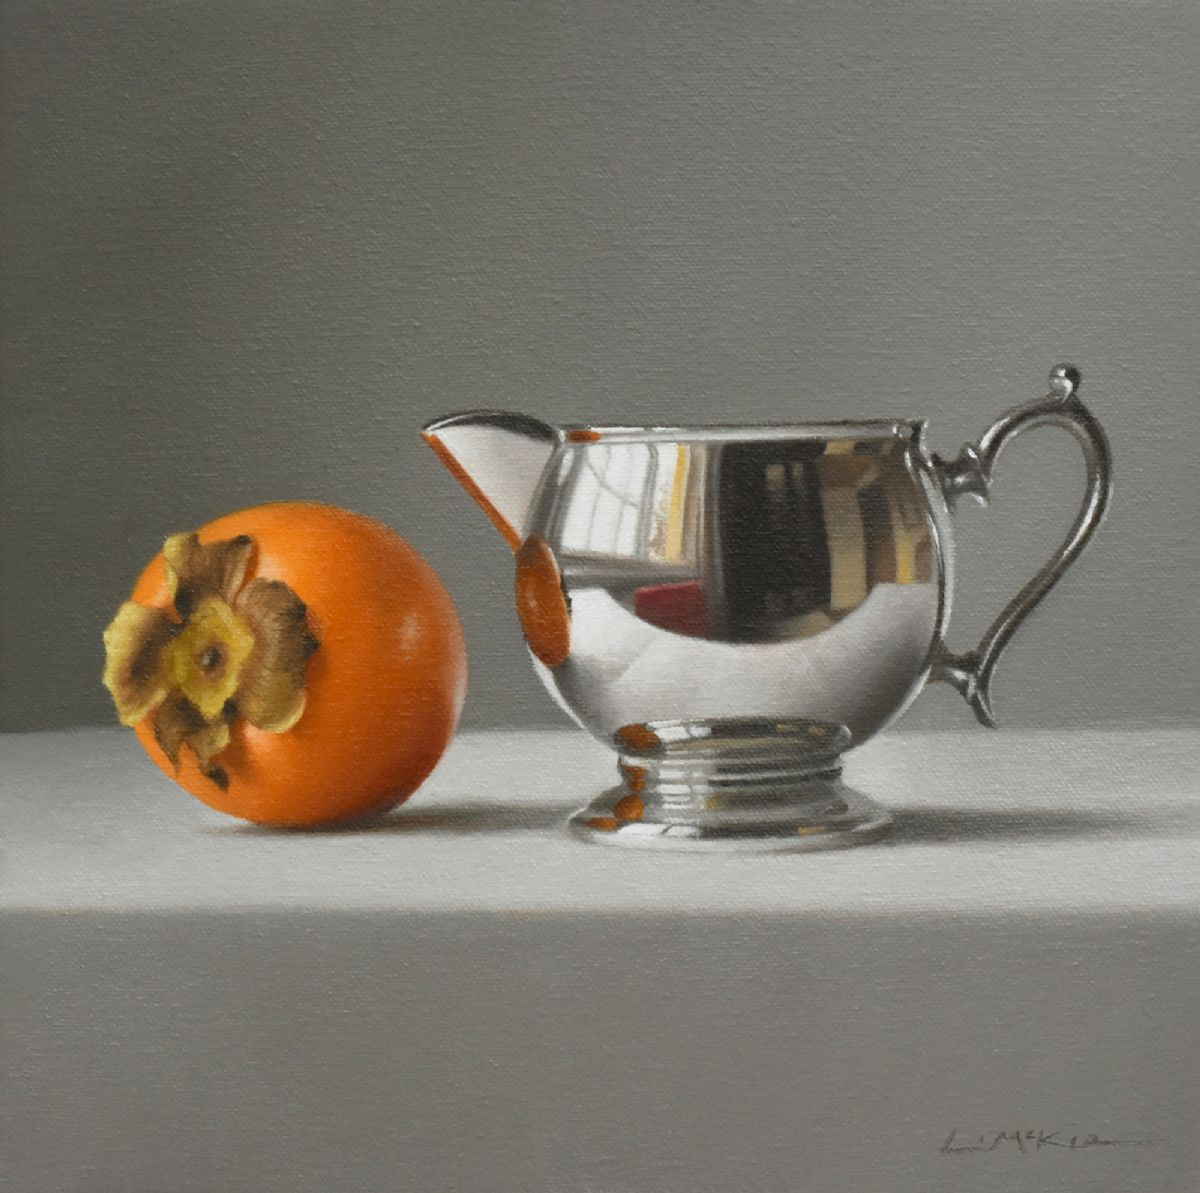 Persimmon with Jug